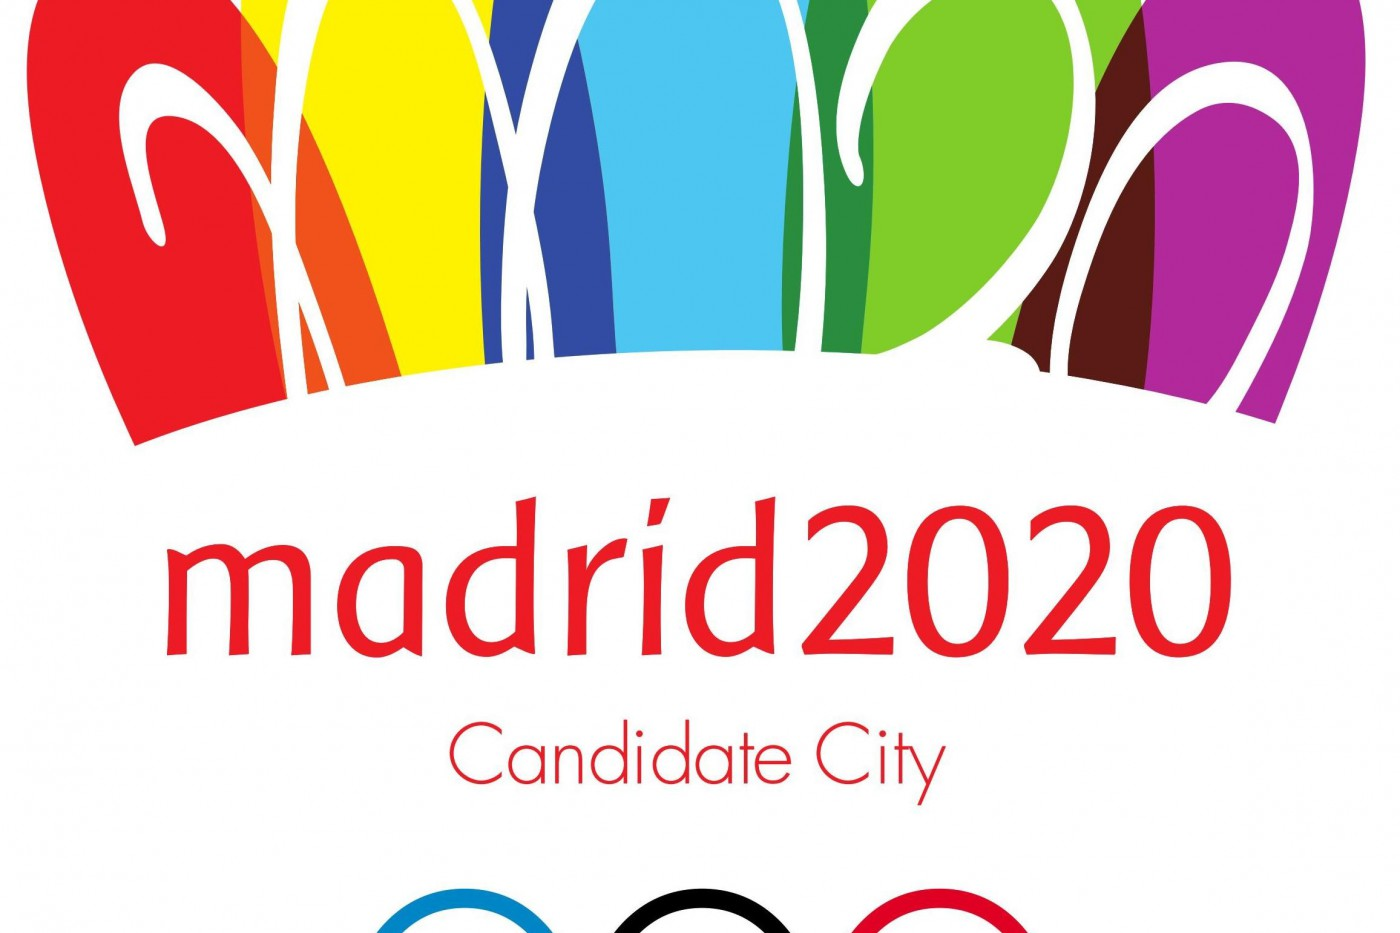 Madrid_2020_Olympic_logo